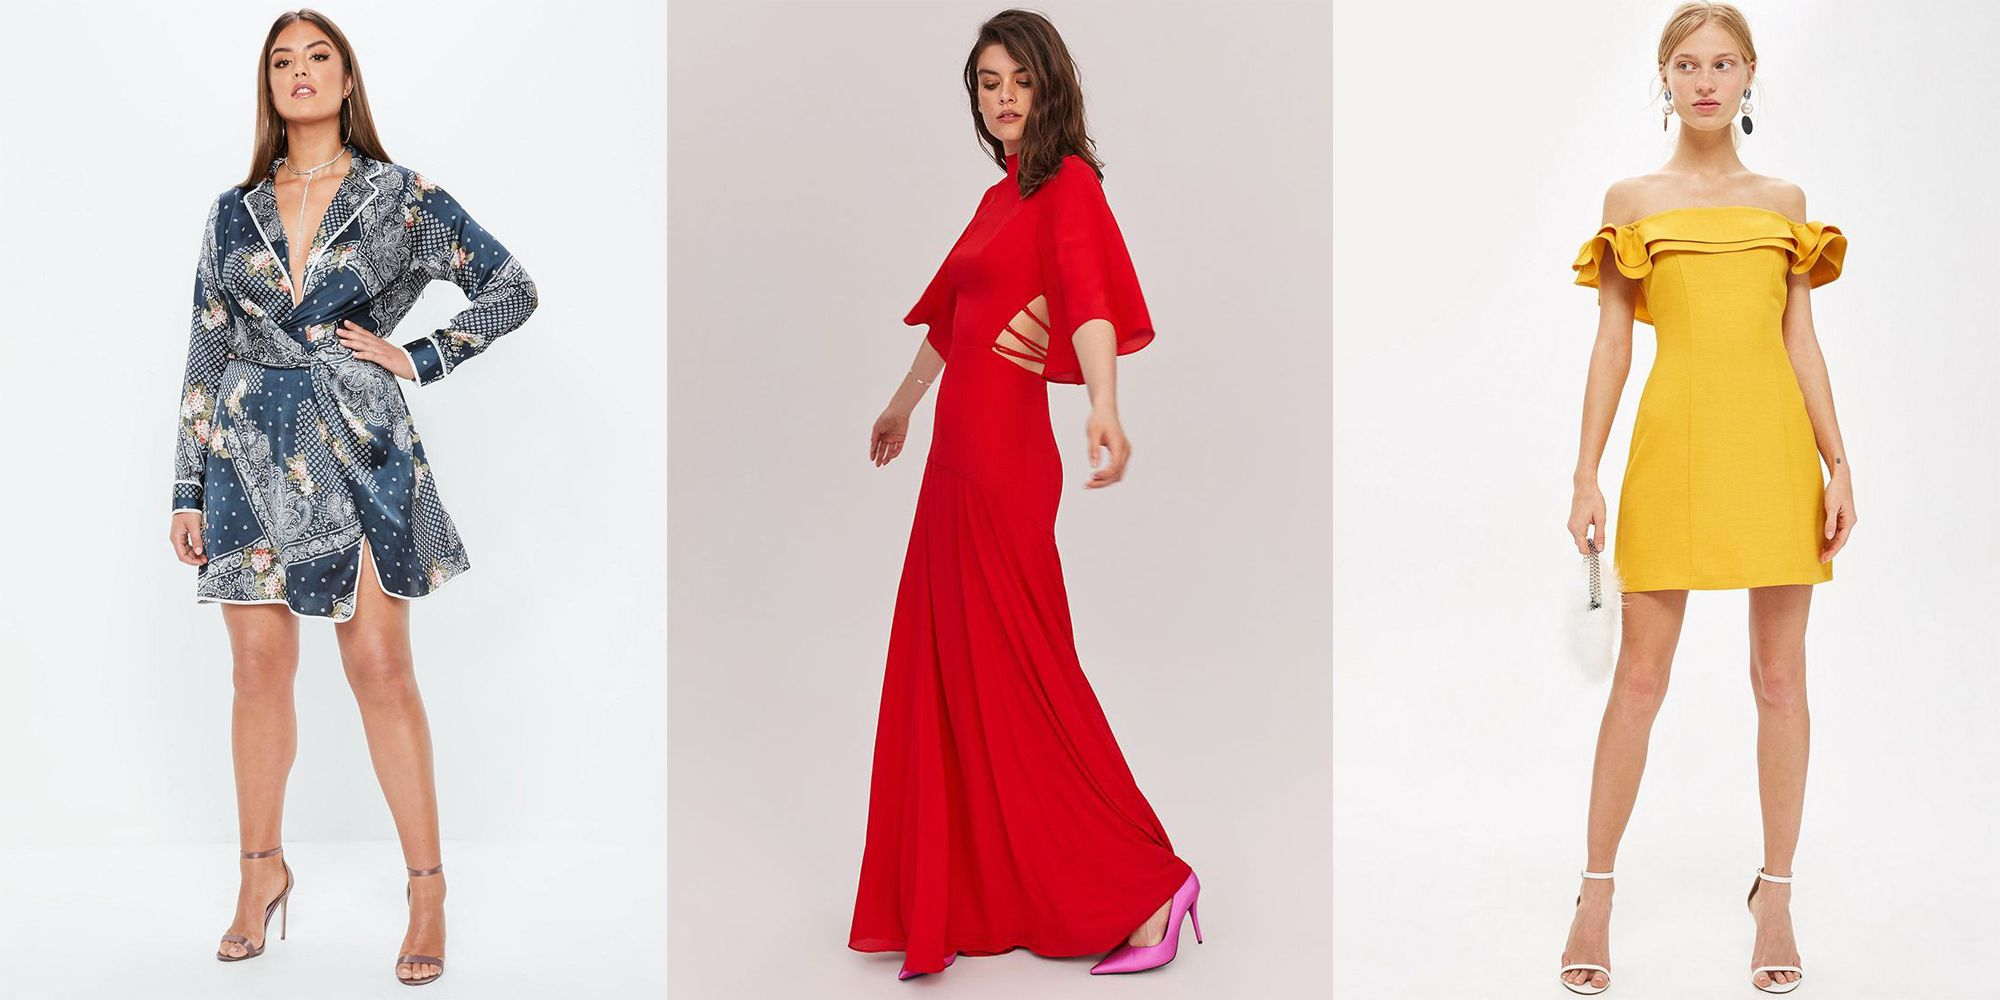 cc76d55eb1d 17 Fall Wedding Guest Dresses — What to Wear to a Fall Wedding